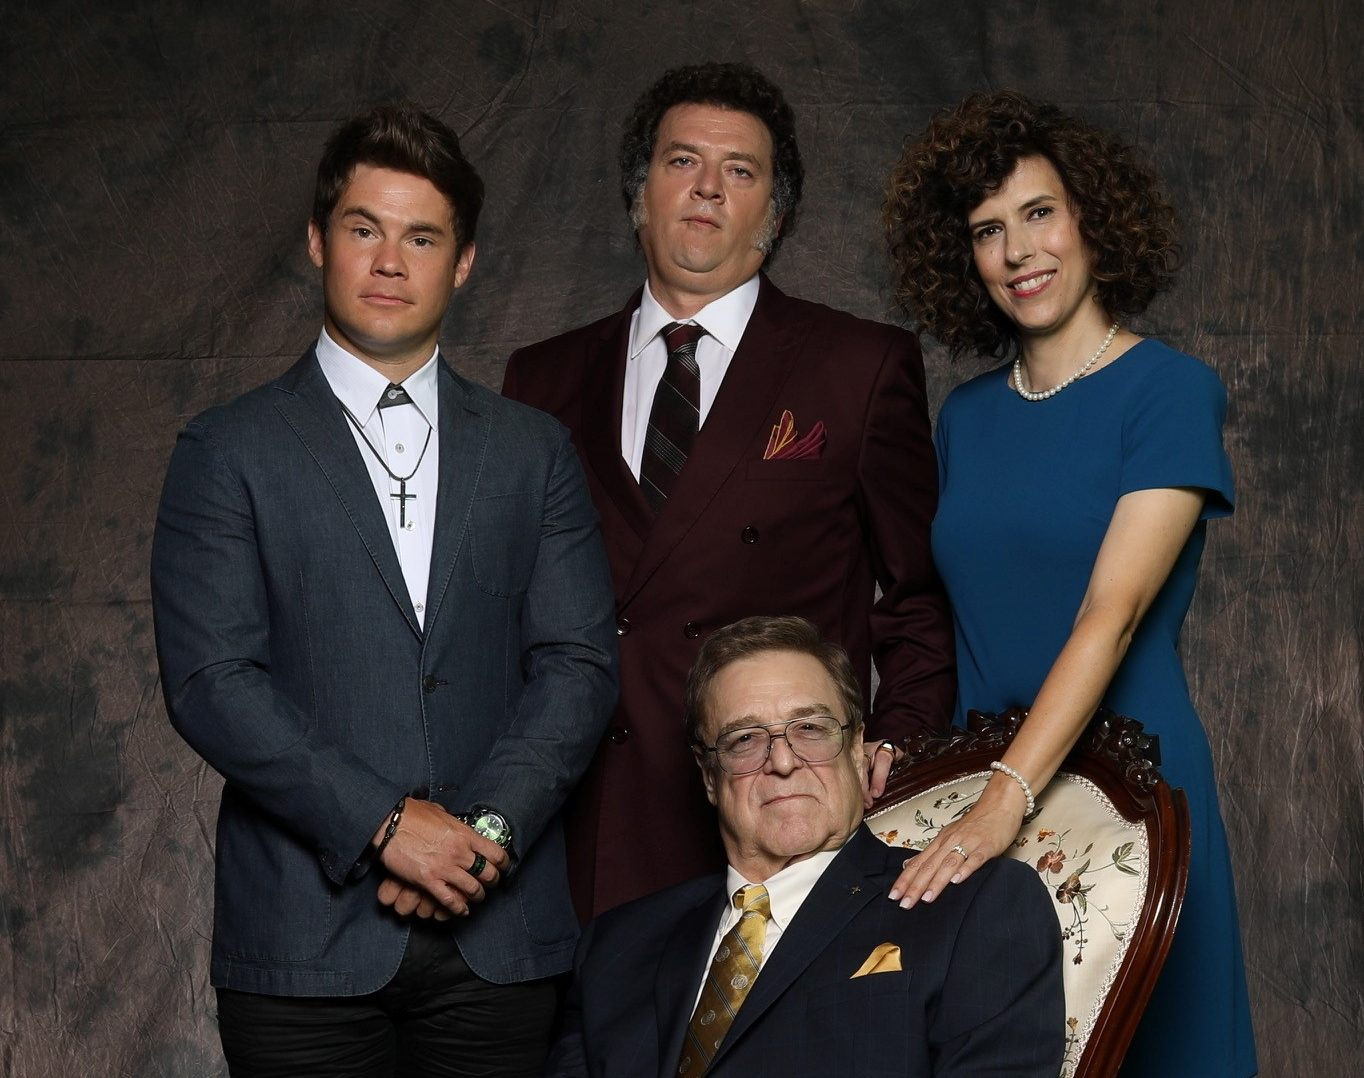 Casting the HBO TV series The Righteous Gemstones Job List